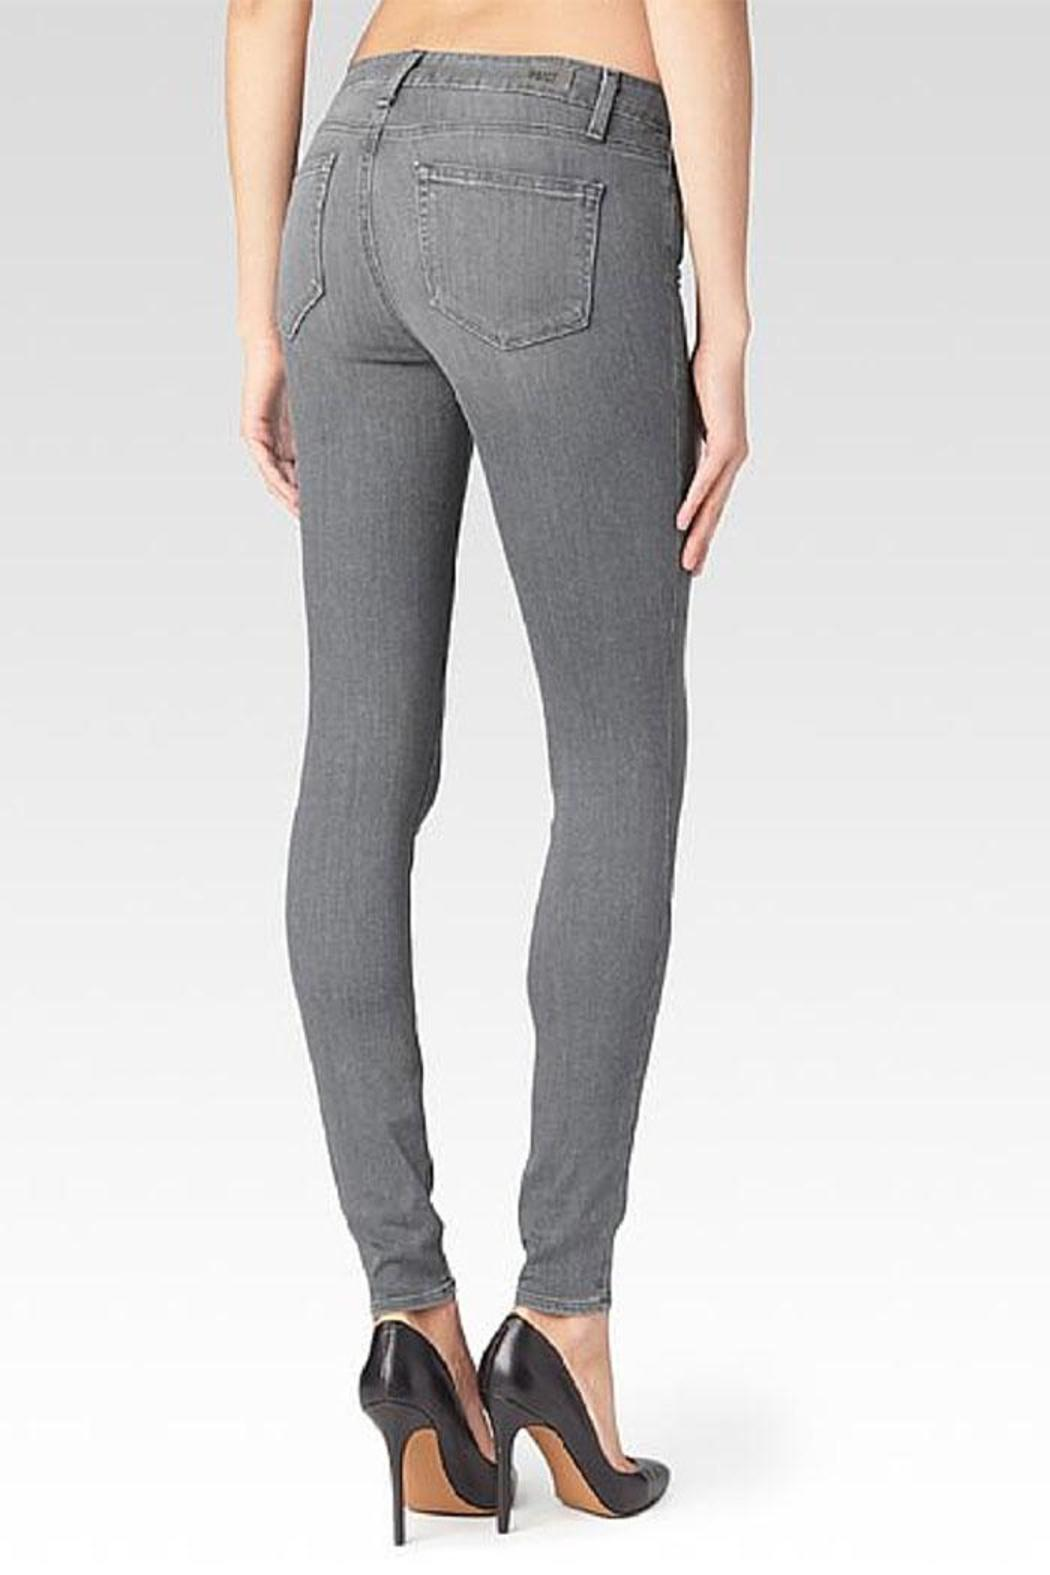 Paige Denim Verdugo Silver Skinnies - Front Full Image